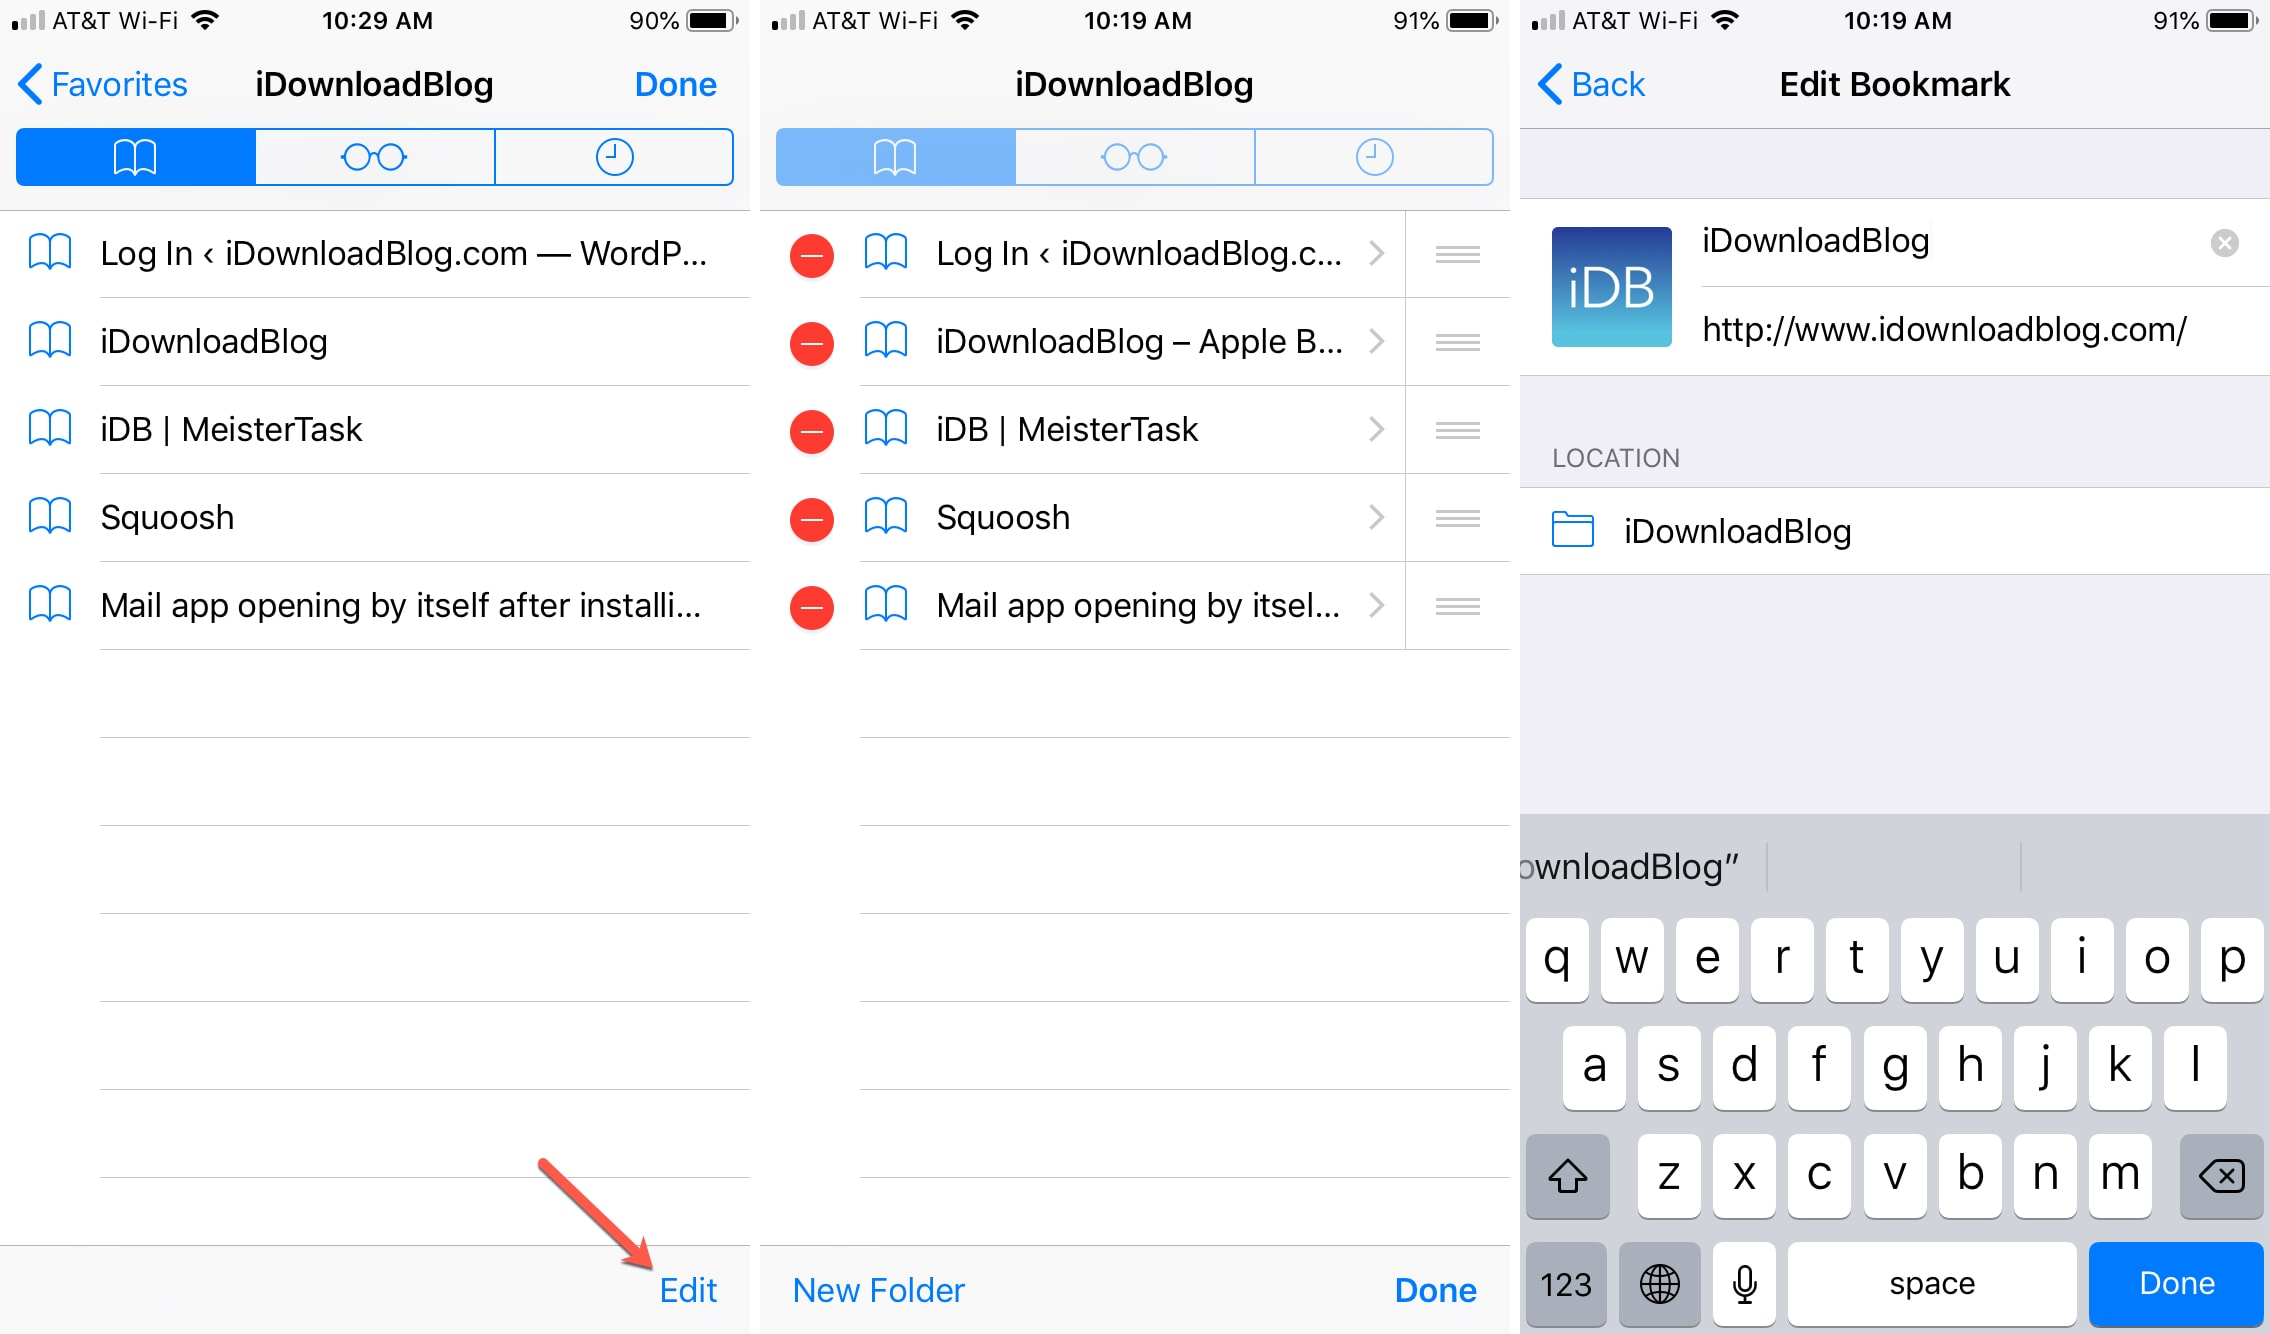 Add To Favorites how to add favorites in safari on iphone, ipad and mac